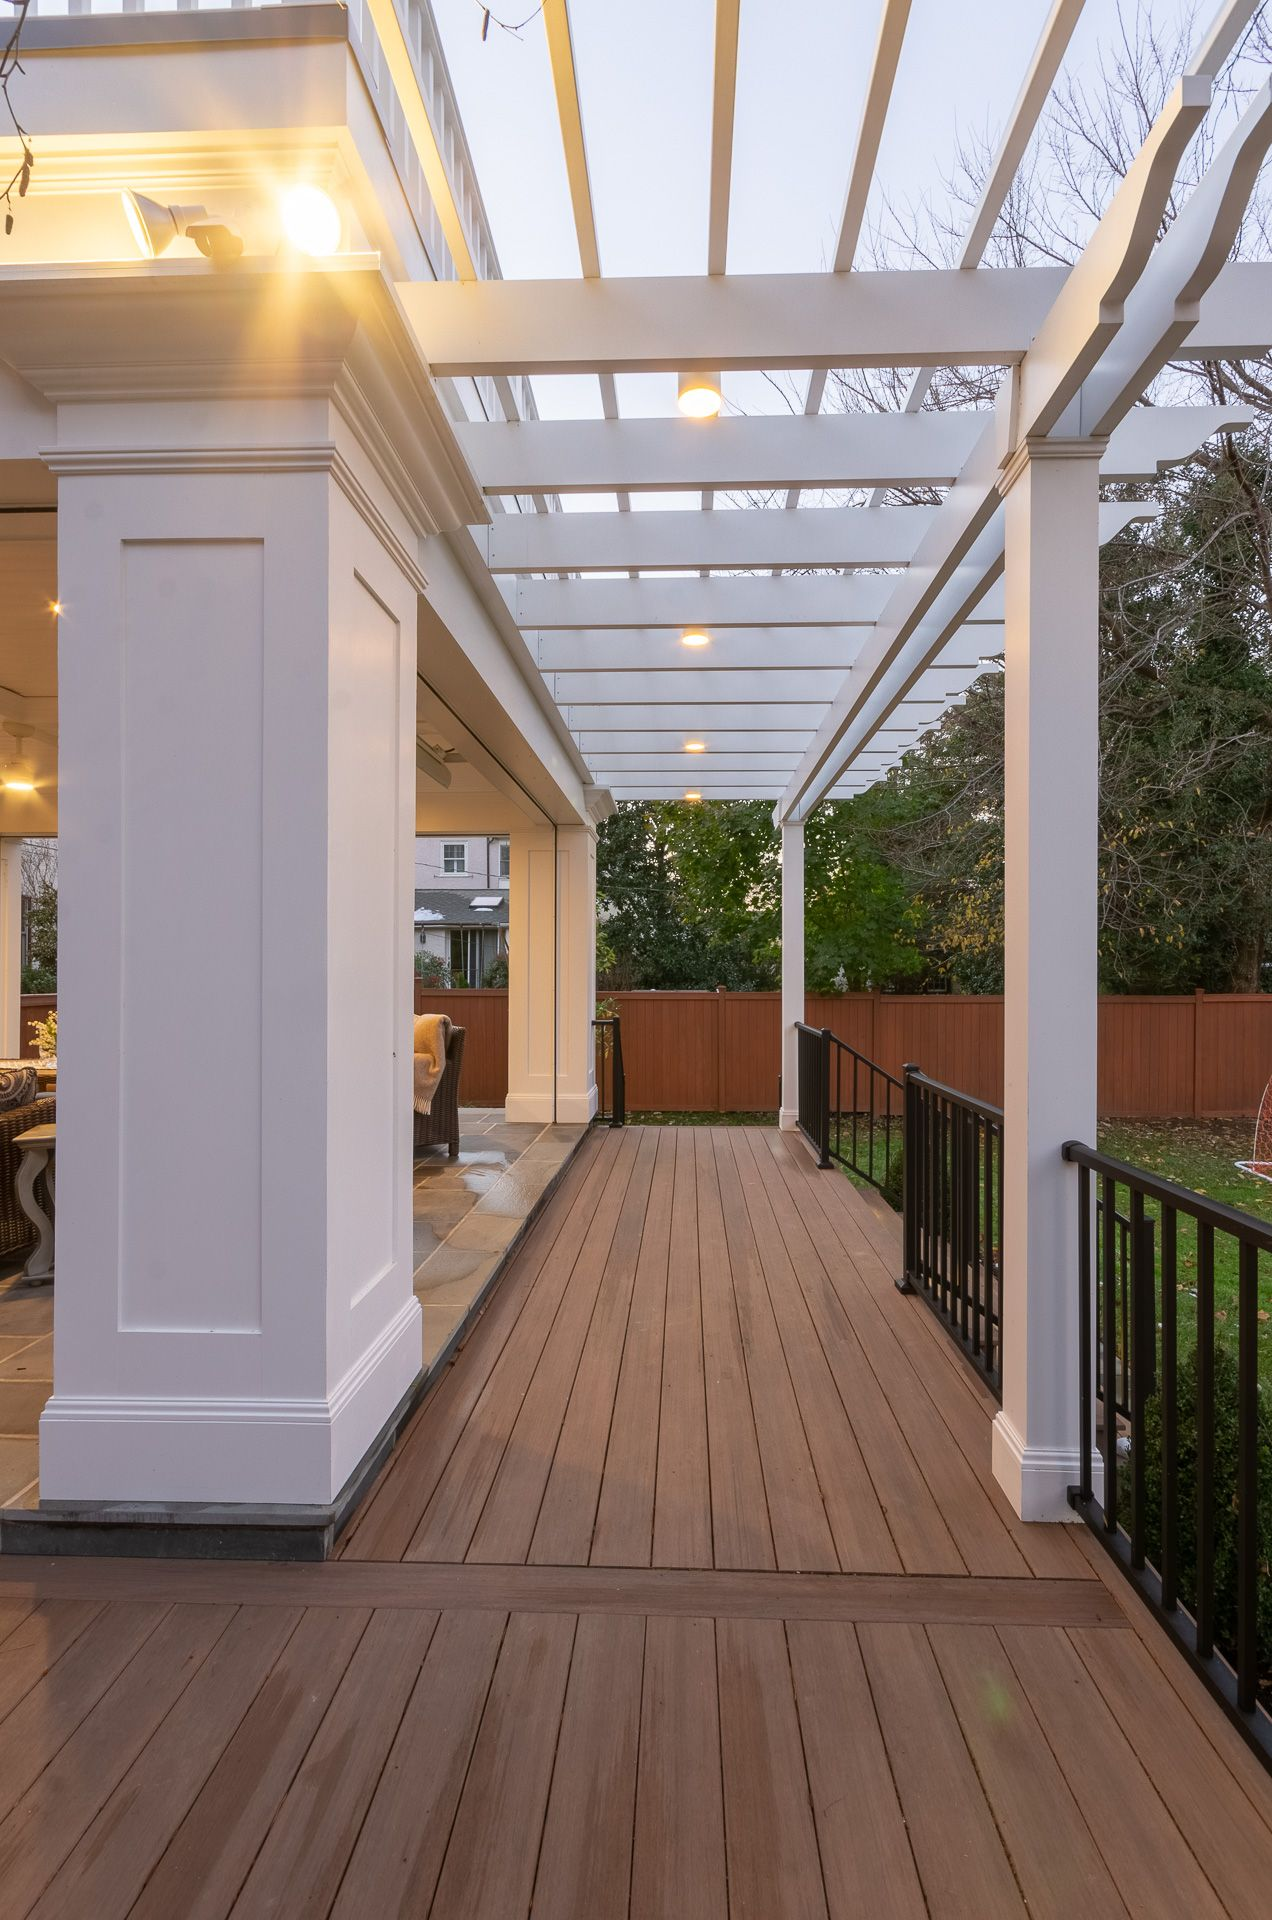 Outdoor Living | Outdoor living design, Backyard pergola ... on Disabatino Outdoor Living id=21598